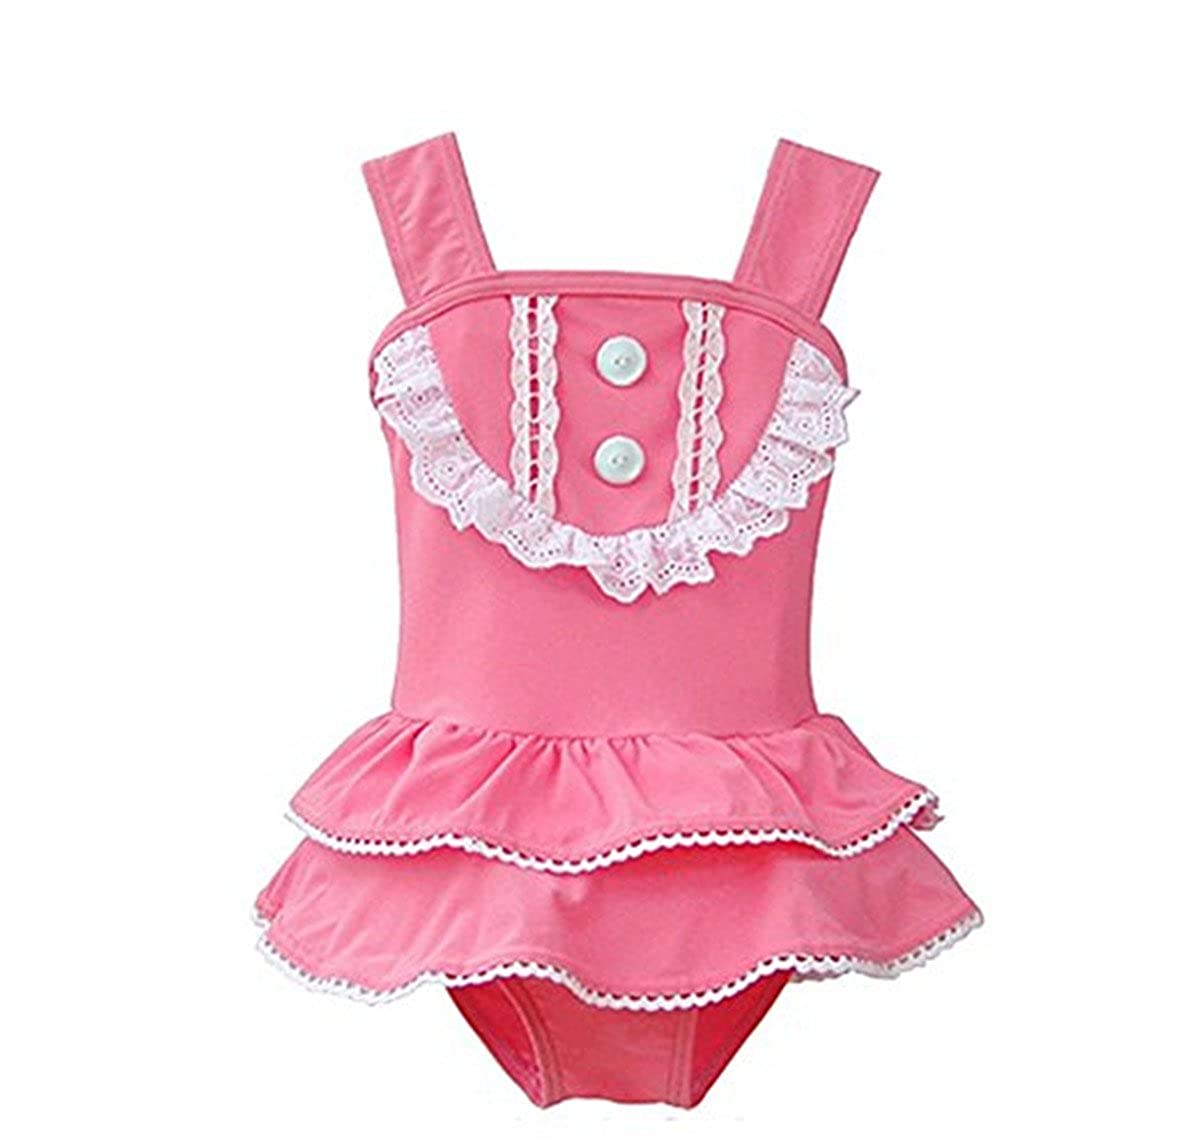 Baby Girls Toddler Kids One Piece Pink Lace Flounced Swimsuit Swimwear With Hat bgirkkSSs005